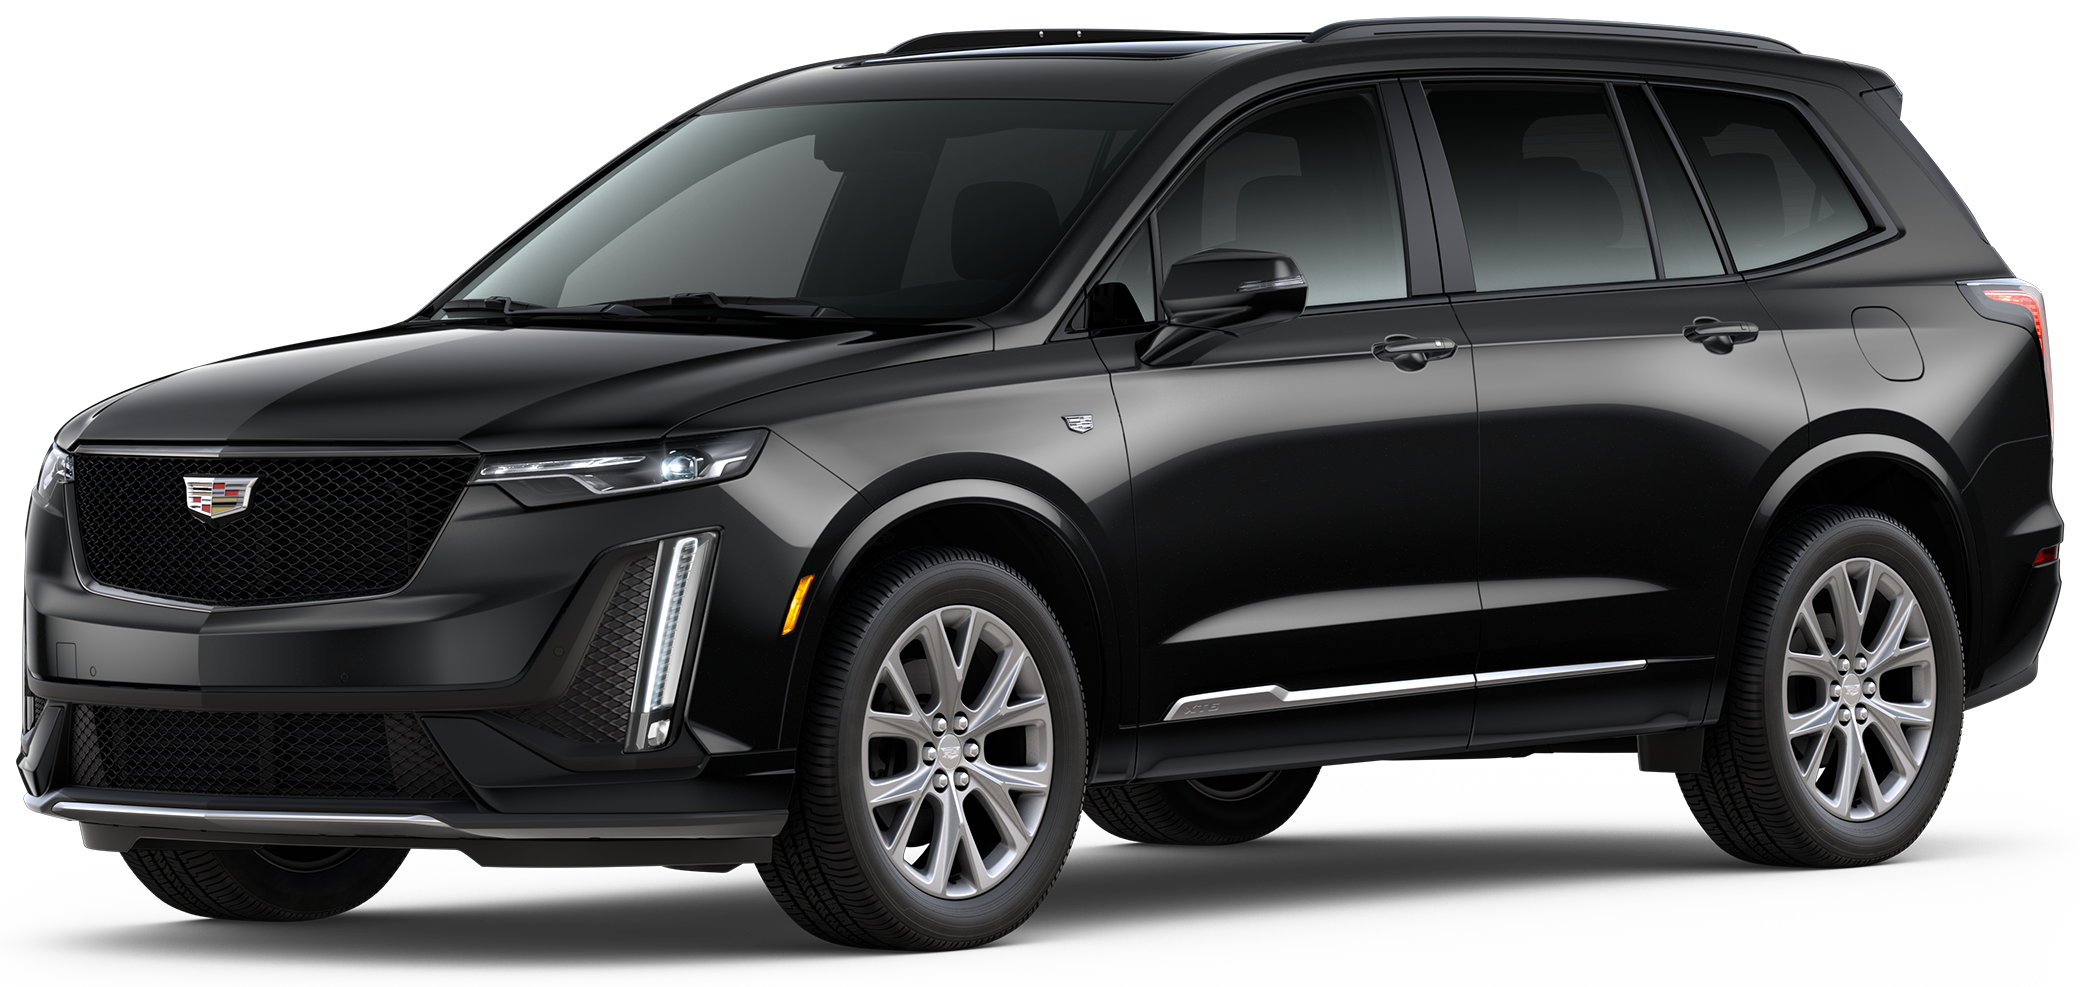 2020 CADILLAC XT6 SUV Incentives, Specials & Offers in ...